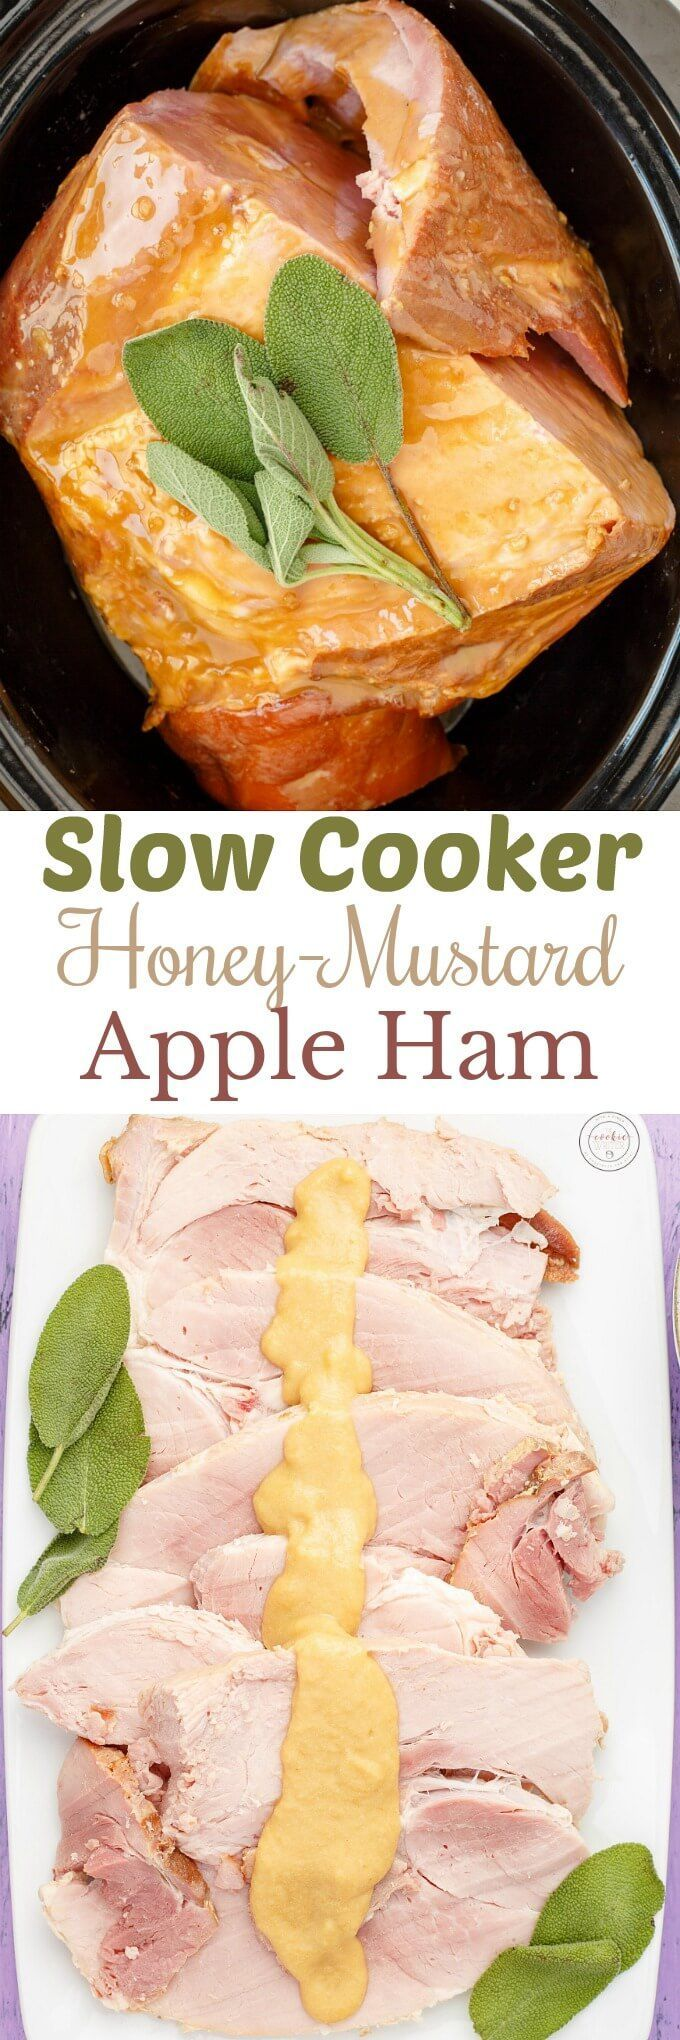 Slow Cooker Honey-Mustard Apple Ham   http://thecookiewriter.com   @thecookiewriter   Easy bone in ham recipe that is completed in the crock pot! No pineapple or brown sugar found here! Completely gluten-free, relatively healthy, and perfect for Thanksgiving, Christmas, and Easter! Plus, use that leftover bone to make soup! Boneless ham will work perfectly here, and the apples are pureed down to make a nice gravy!